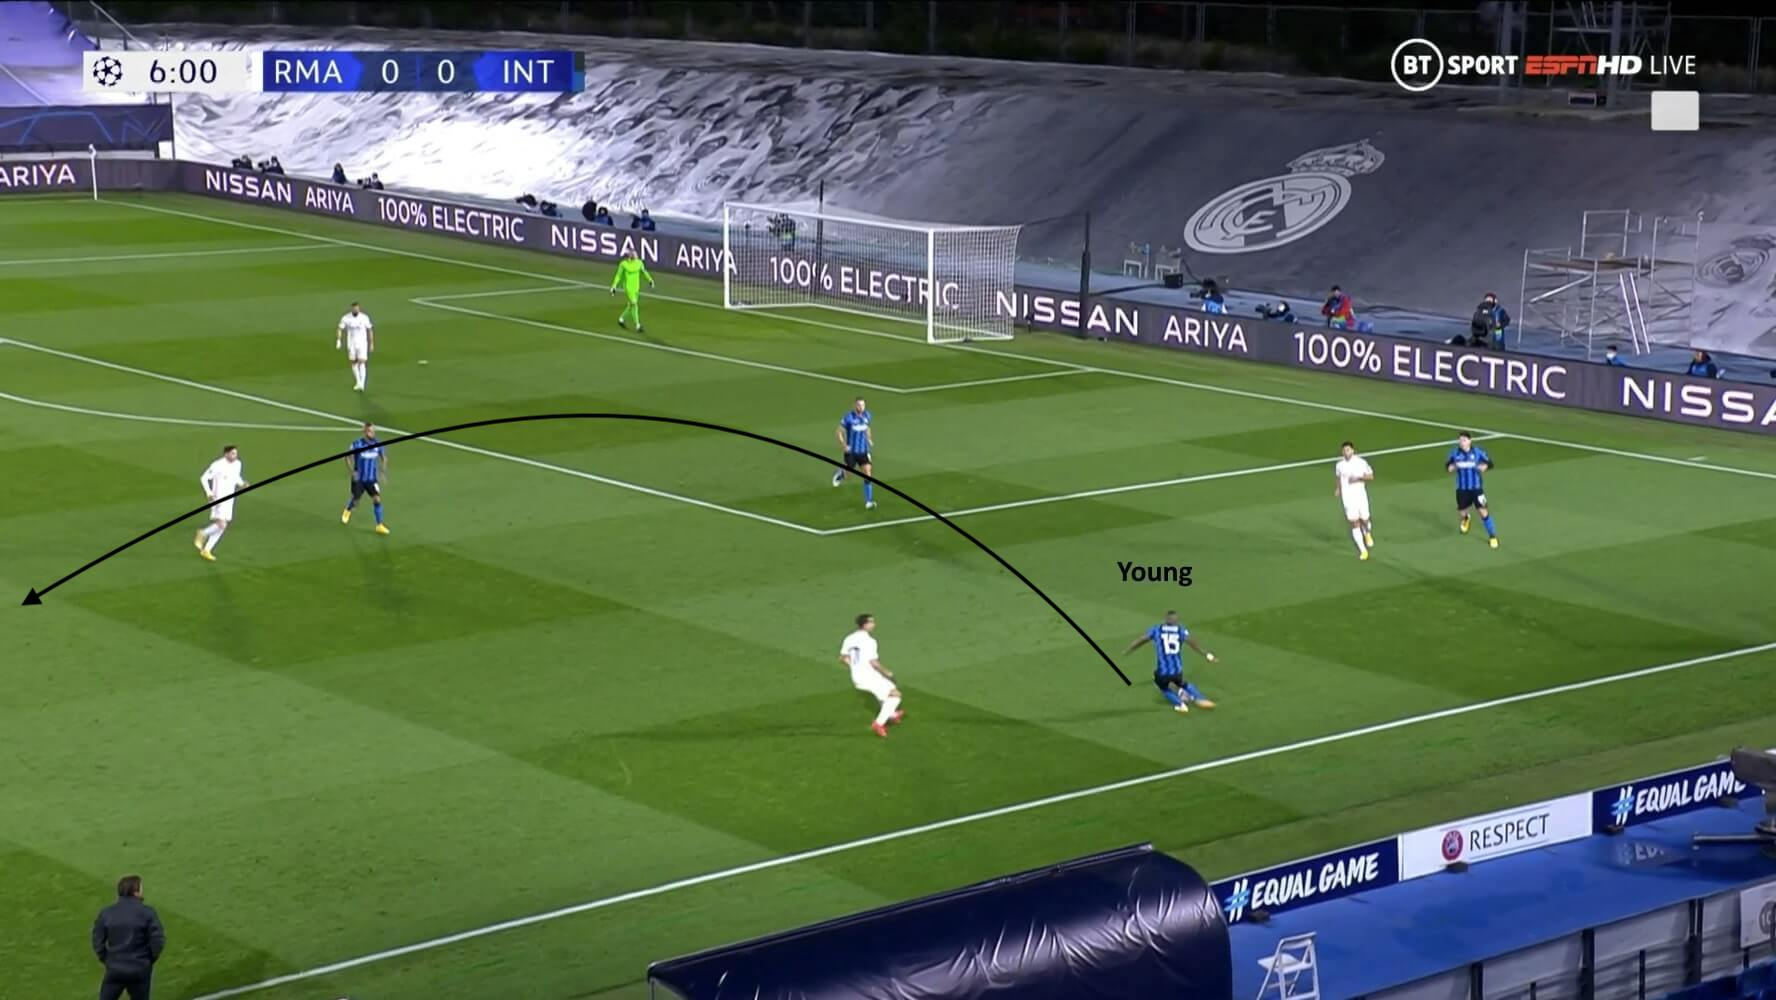 UEFA Champions League 2020/21: Real Madrid vs Inter - tactical analysis tactics